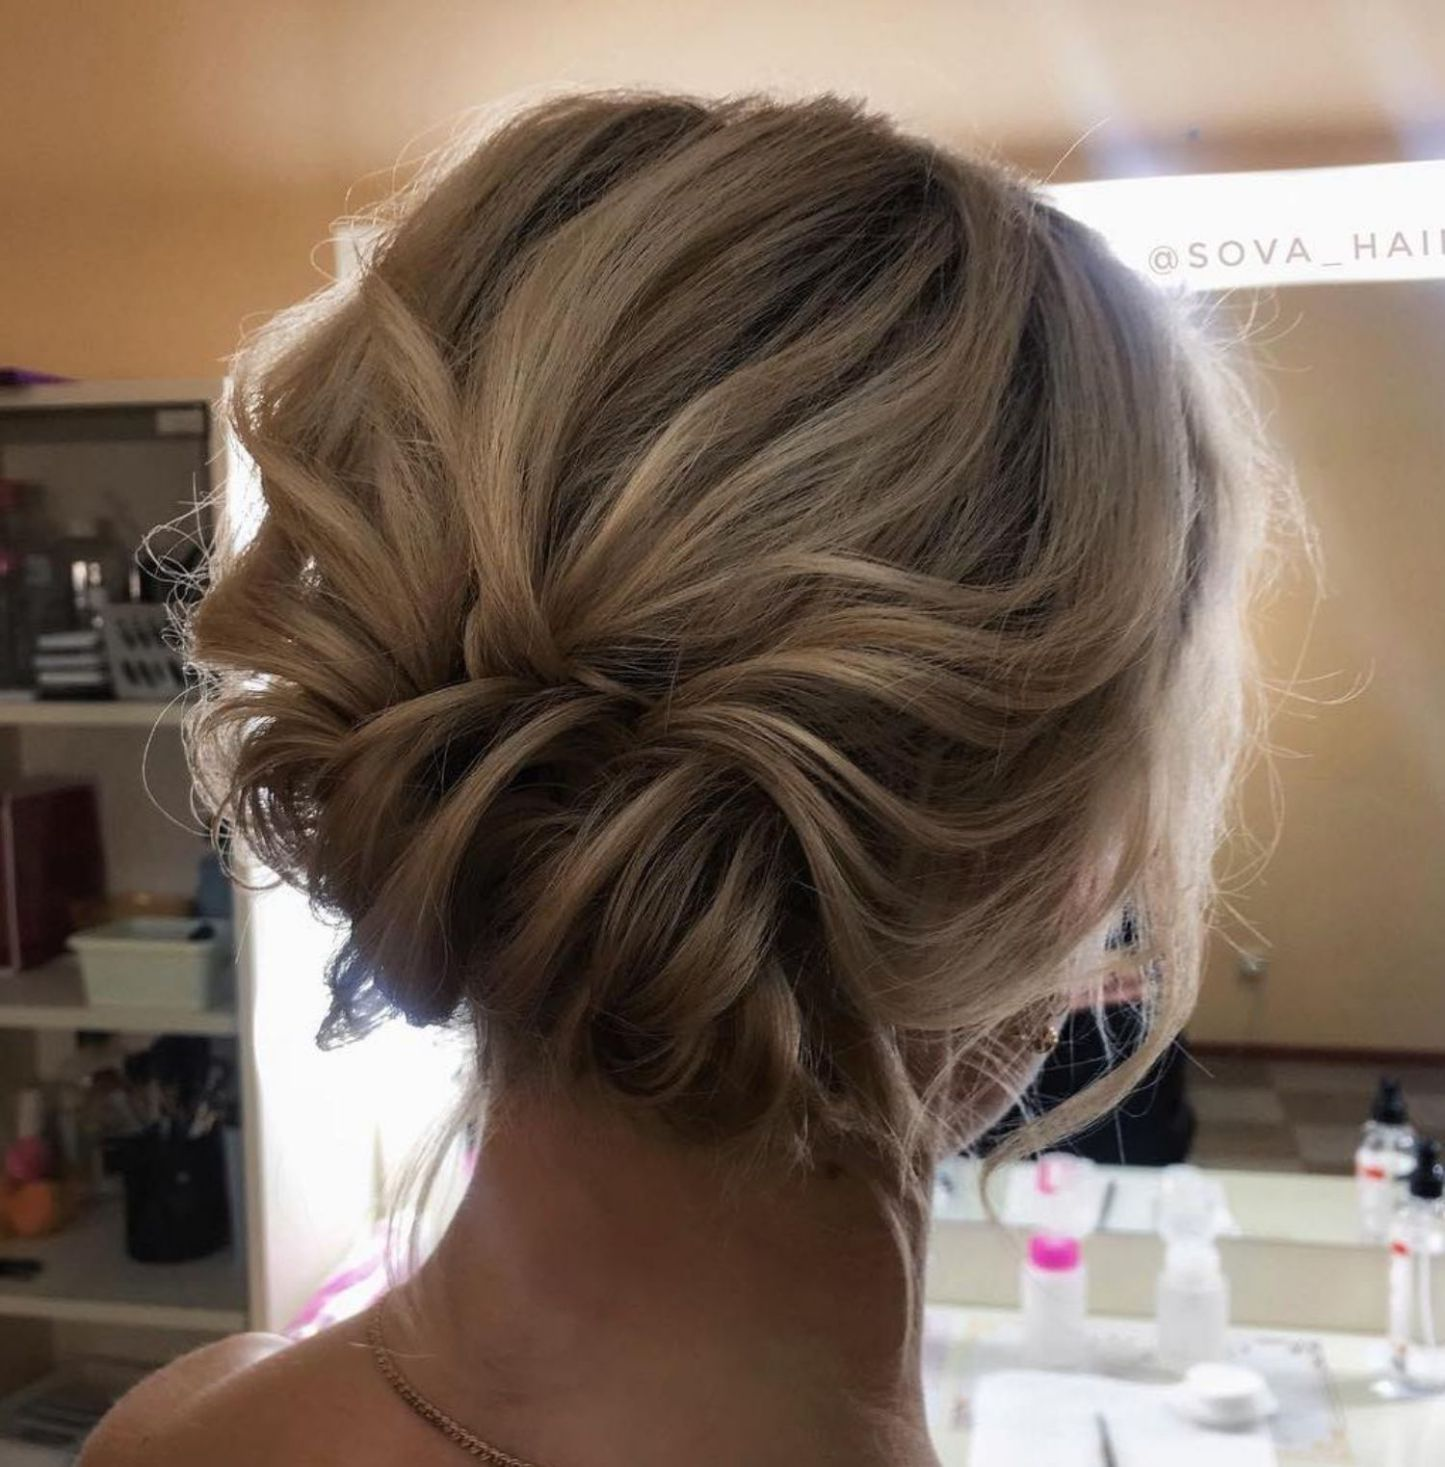 Messy Updo For Medium Fine Hair Updos For Medium Length Hair Medium Fine Hair Medium Length Hair Styles